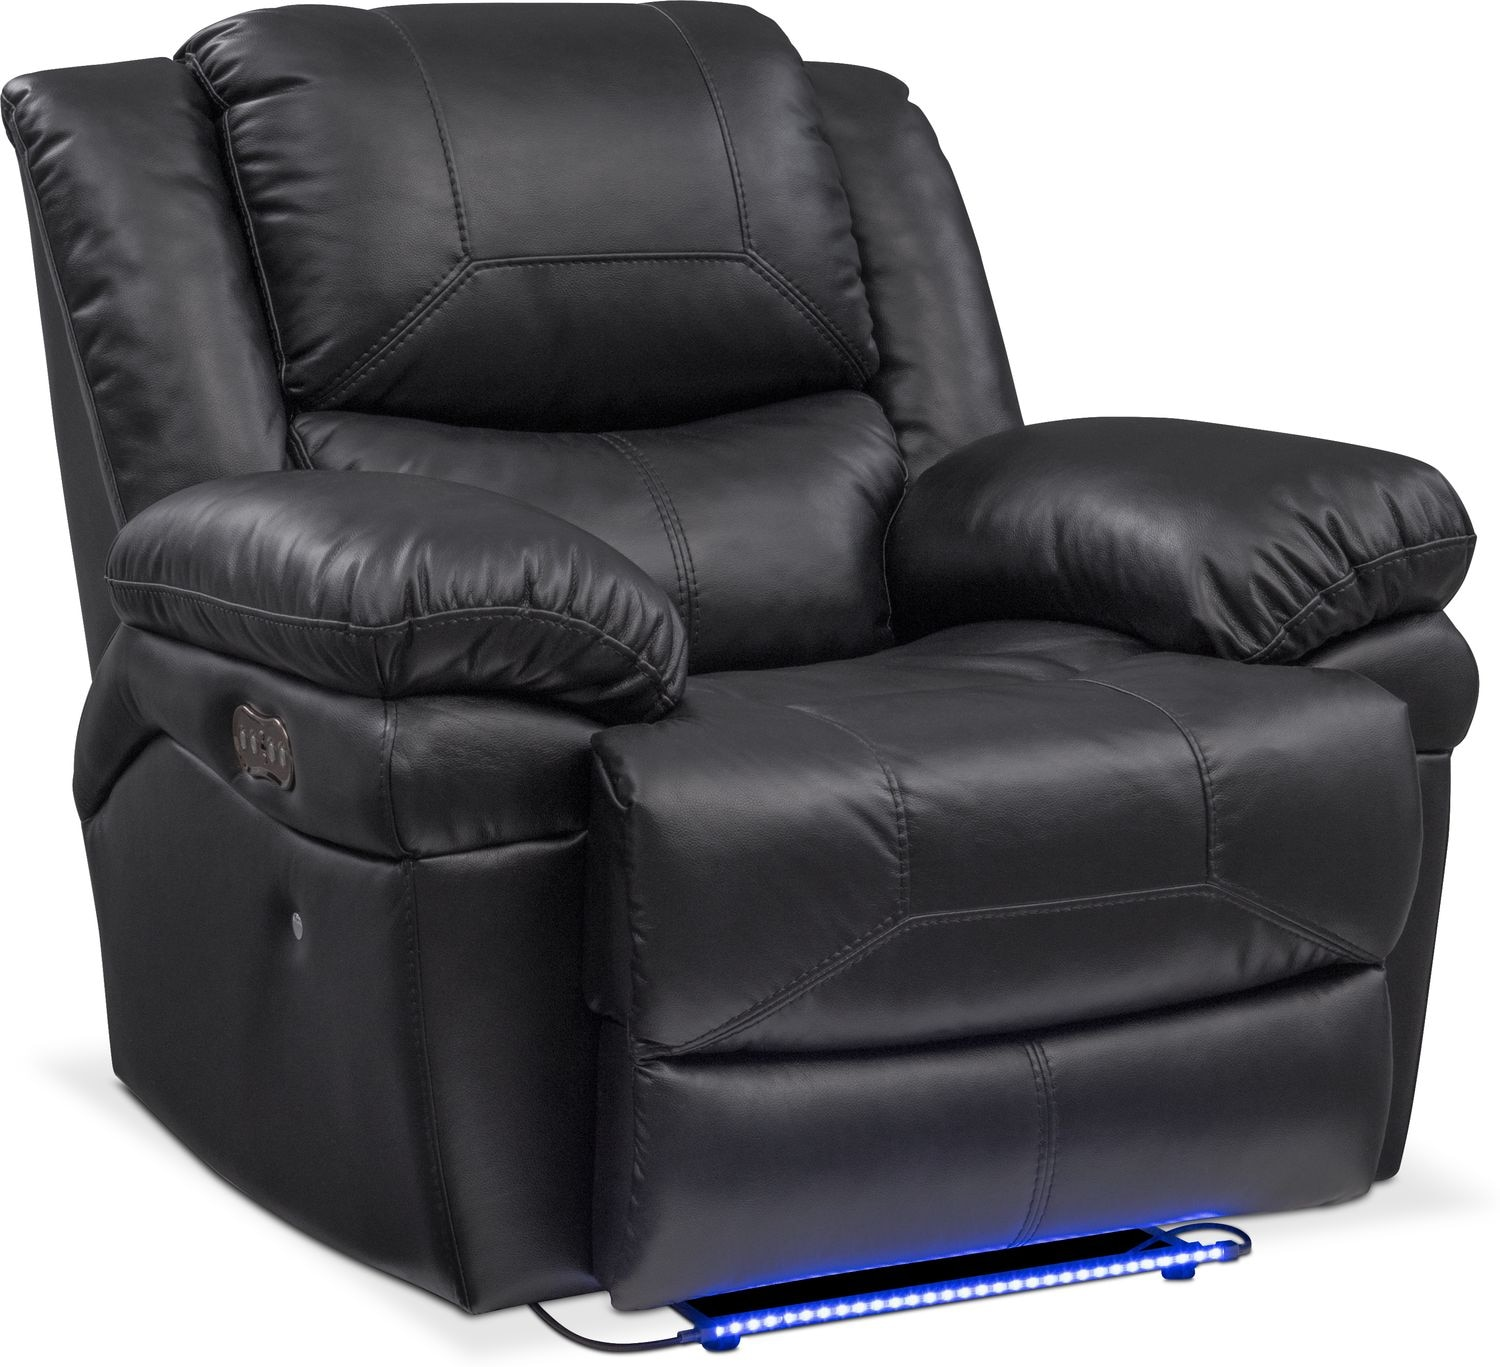 Living Room Furniture - Monza Dual-Power Recliner